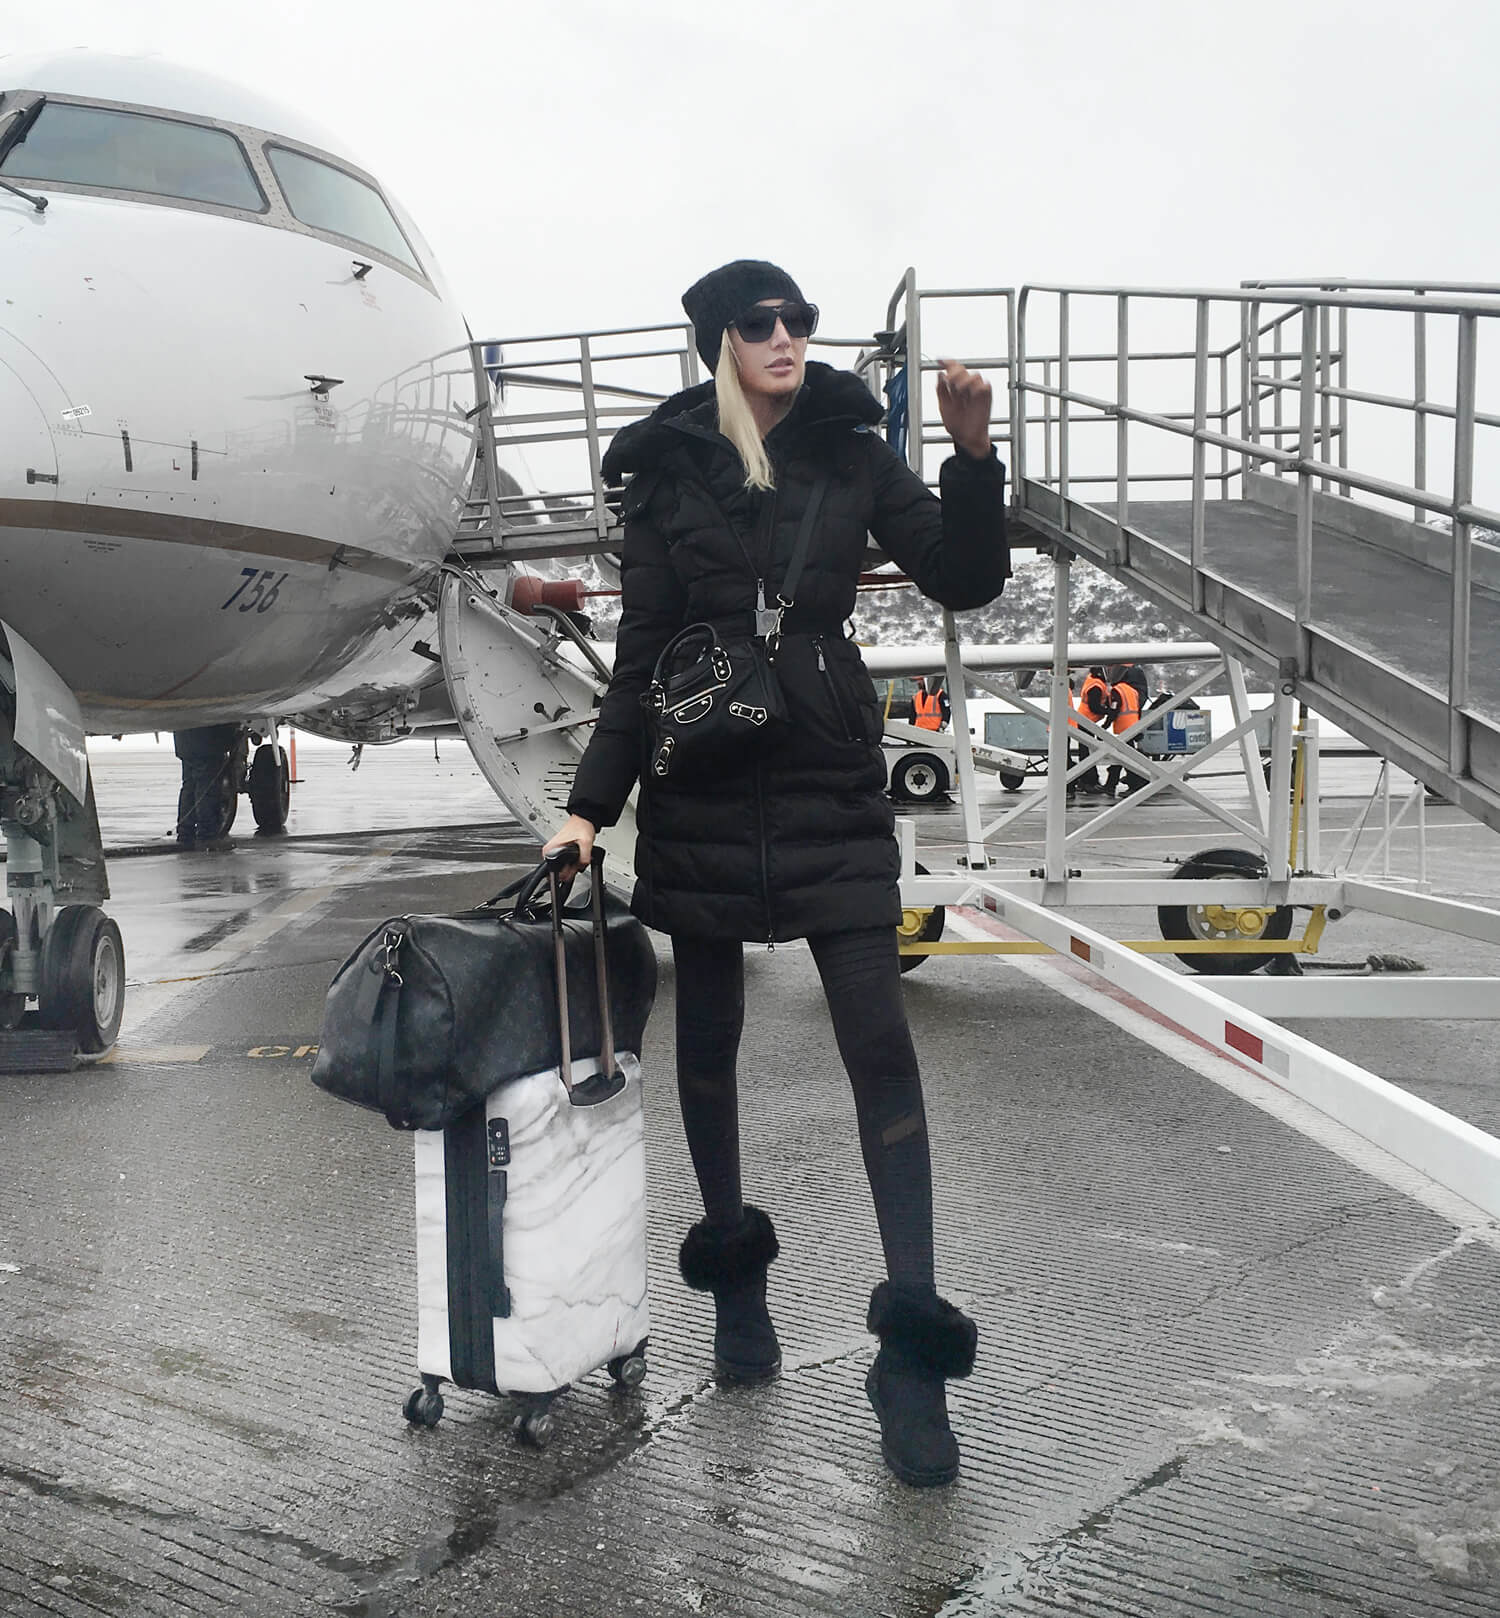 Airport Outfits, Cute Airport Outfits for Winter, Carly Cristman wearing Vince Camuto puffy jacket, Alo Moto Leggings, UGG boots, CalPak White Marble Suitcase